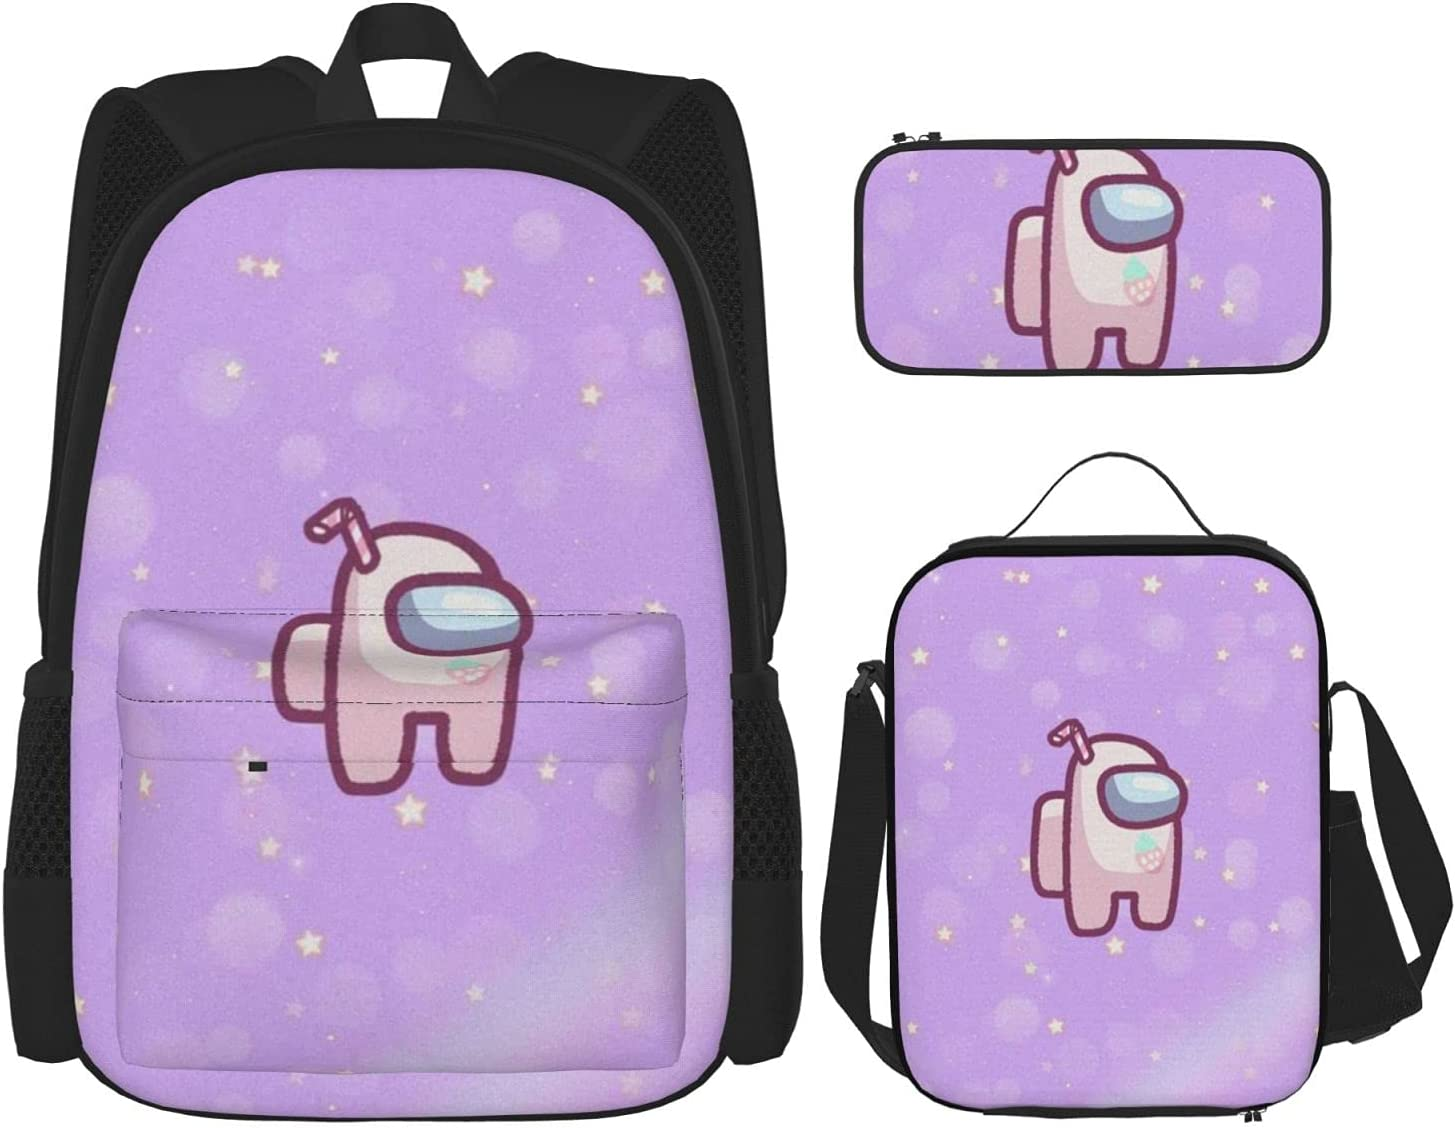 Among Game Us Unisex Backpack 3piece Pen Lunch Bag Phoenix Mall OFFicial shop